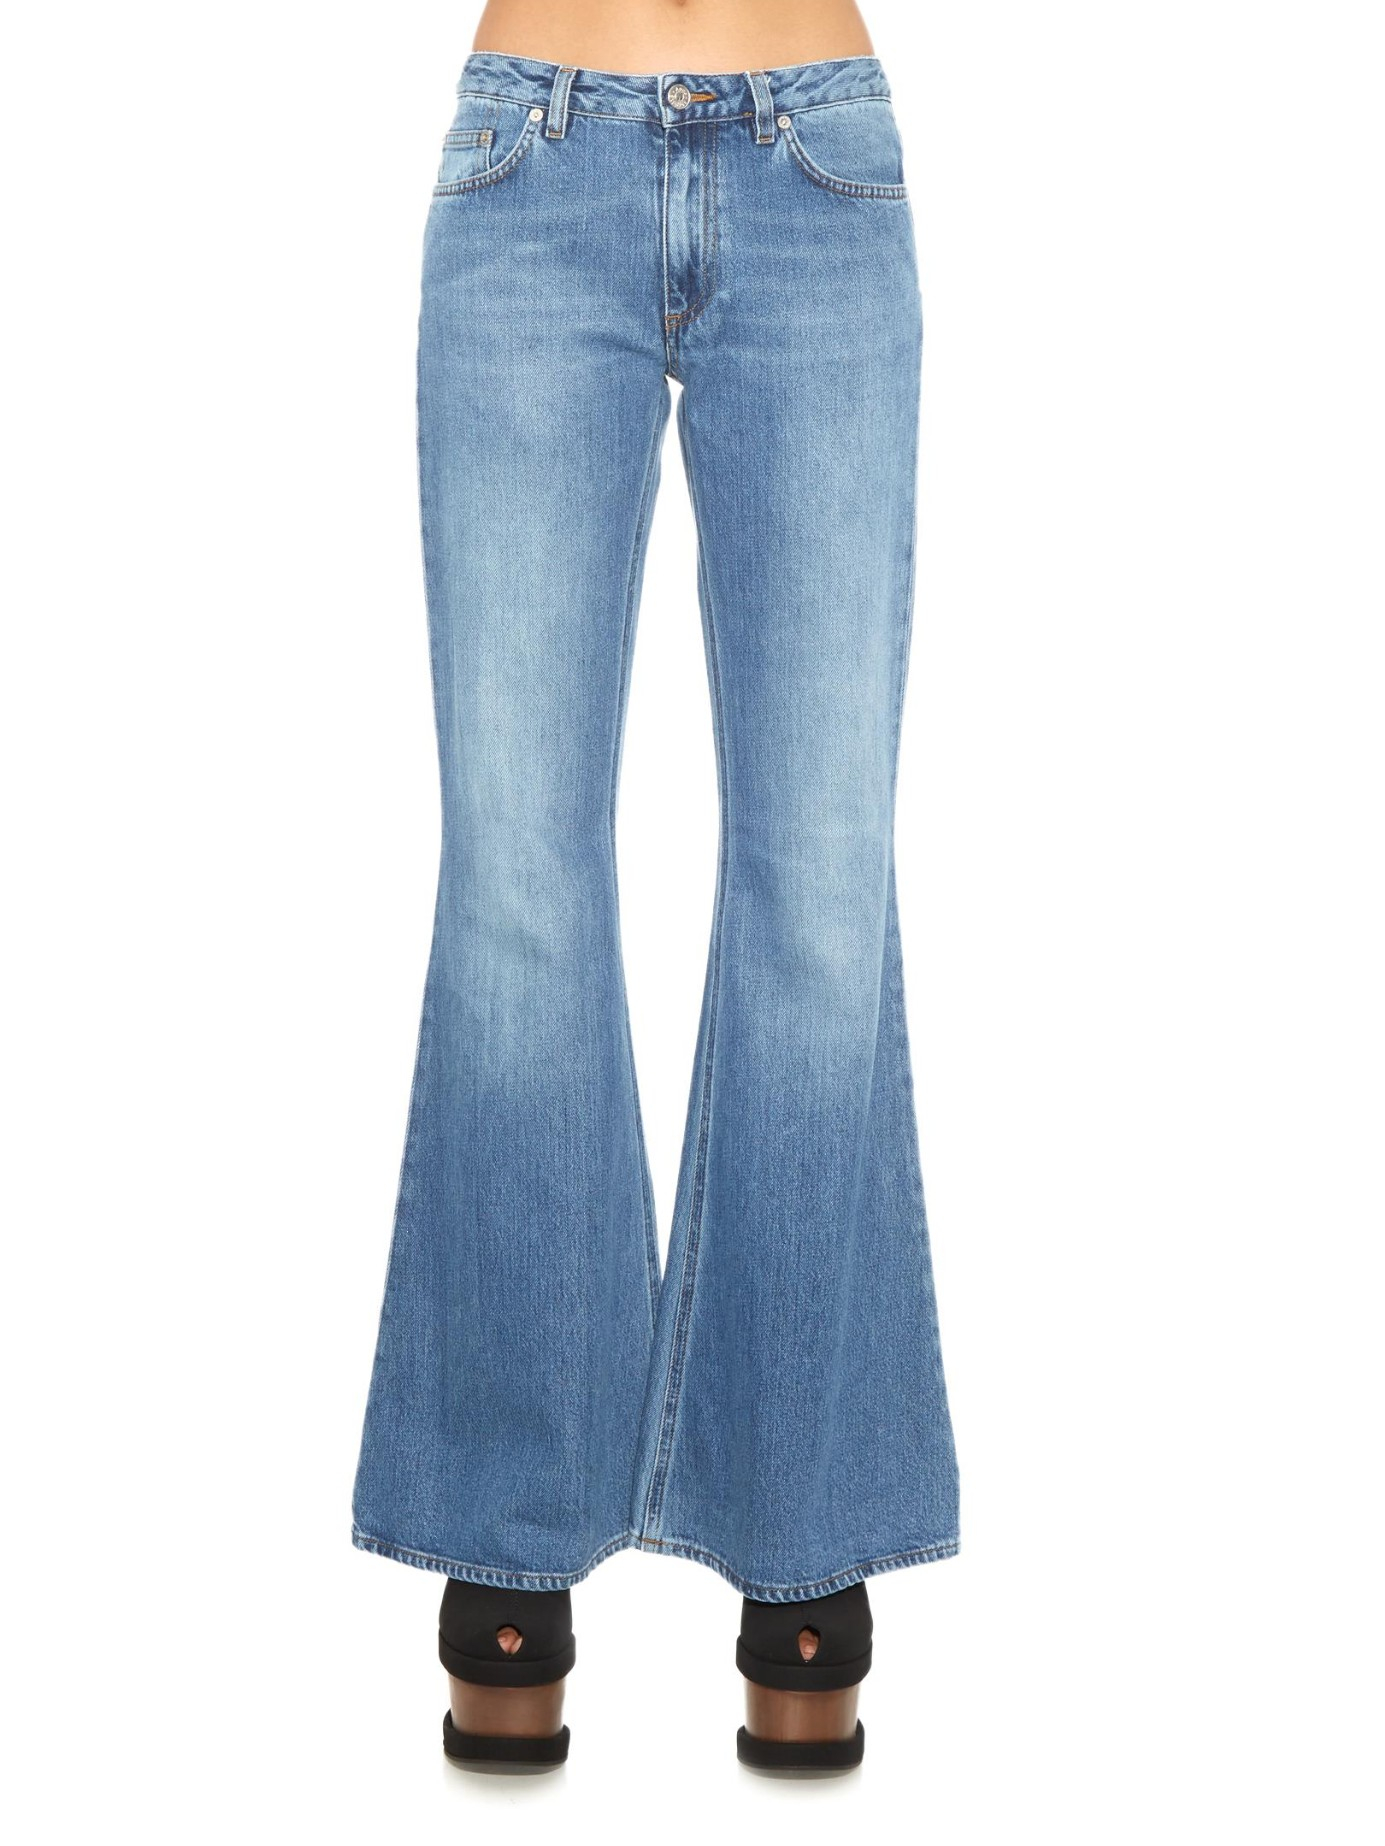 acne mello jeans